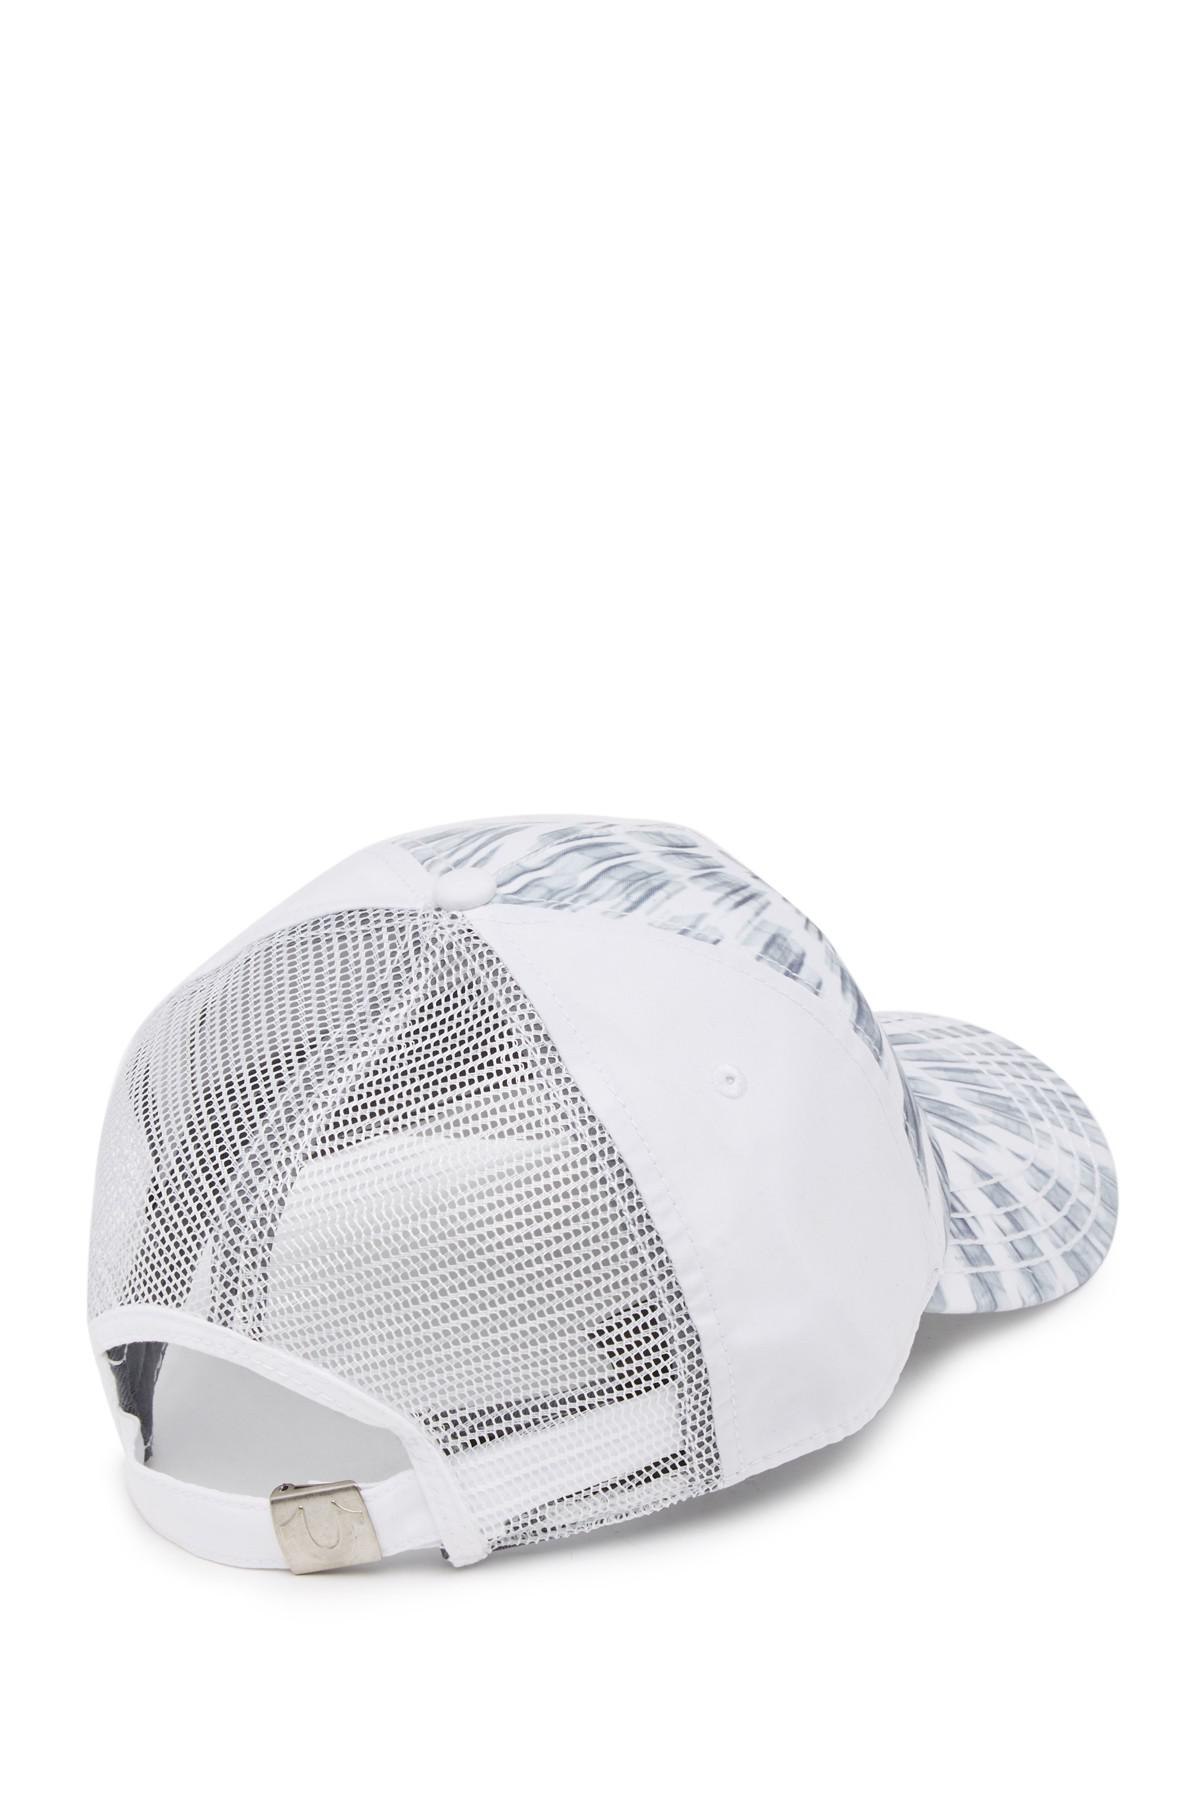 b7aef67c True Religion 3d Zoom Baseball Cap in White for Men - Lyst